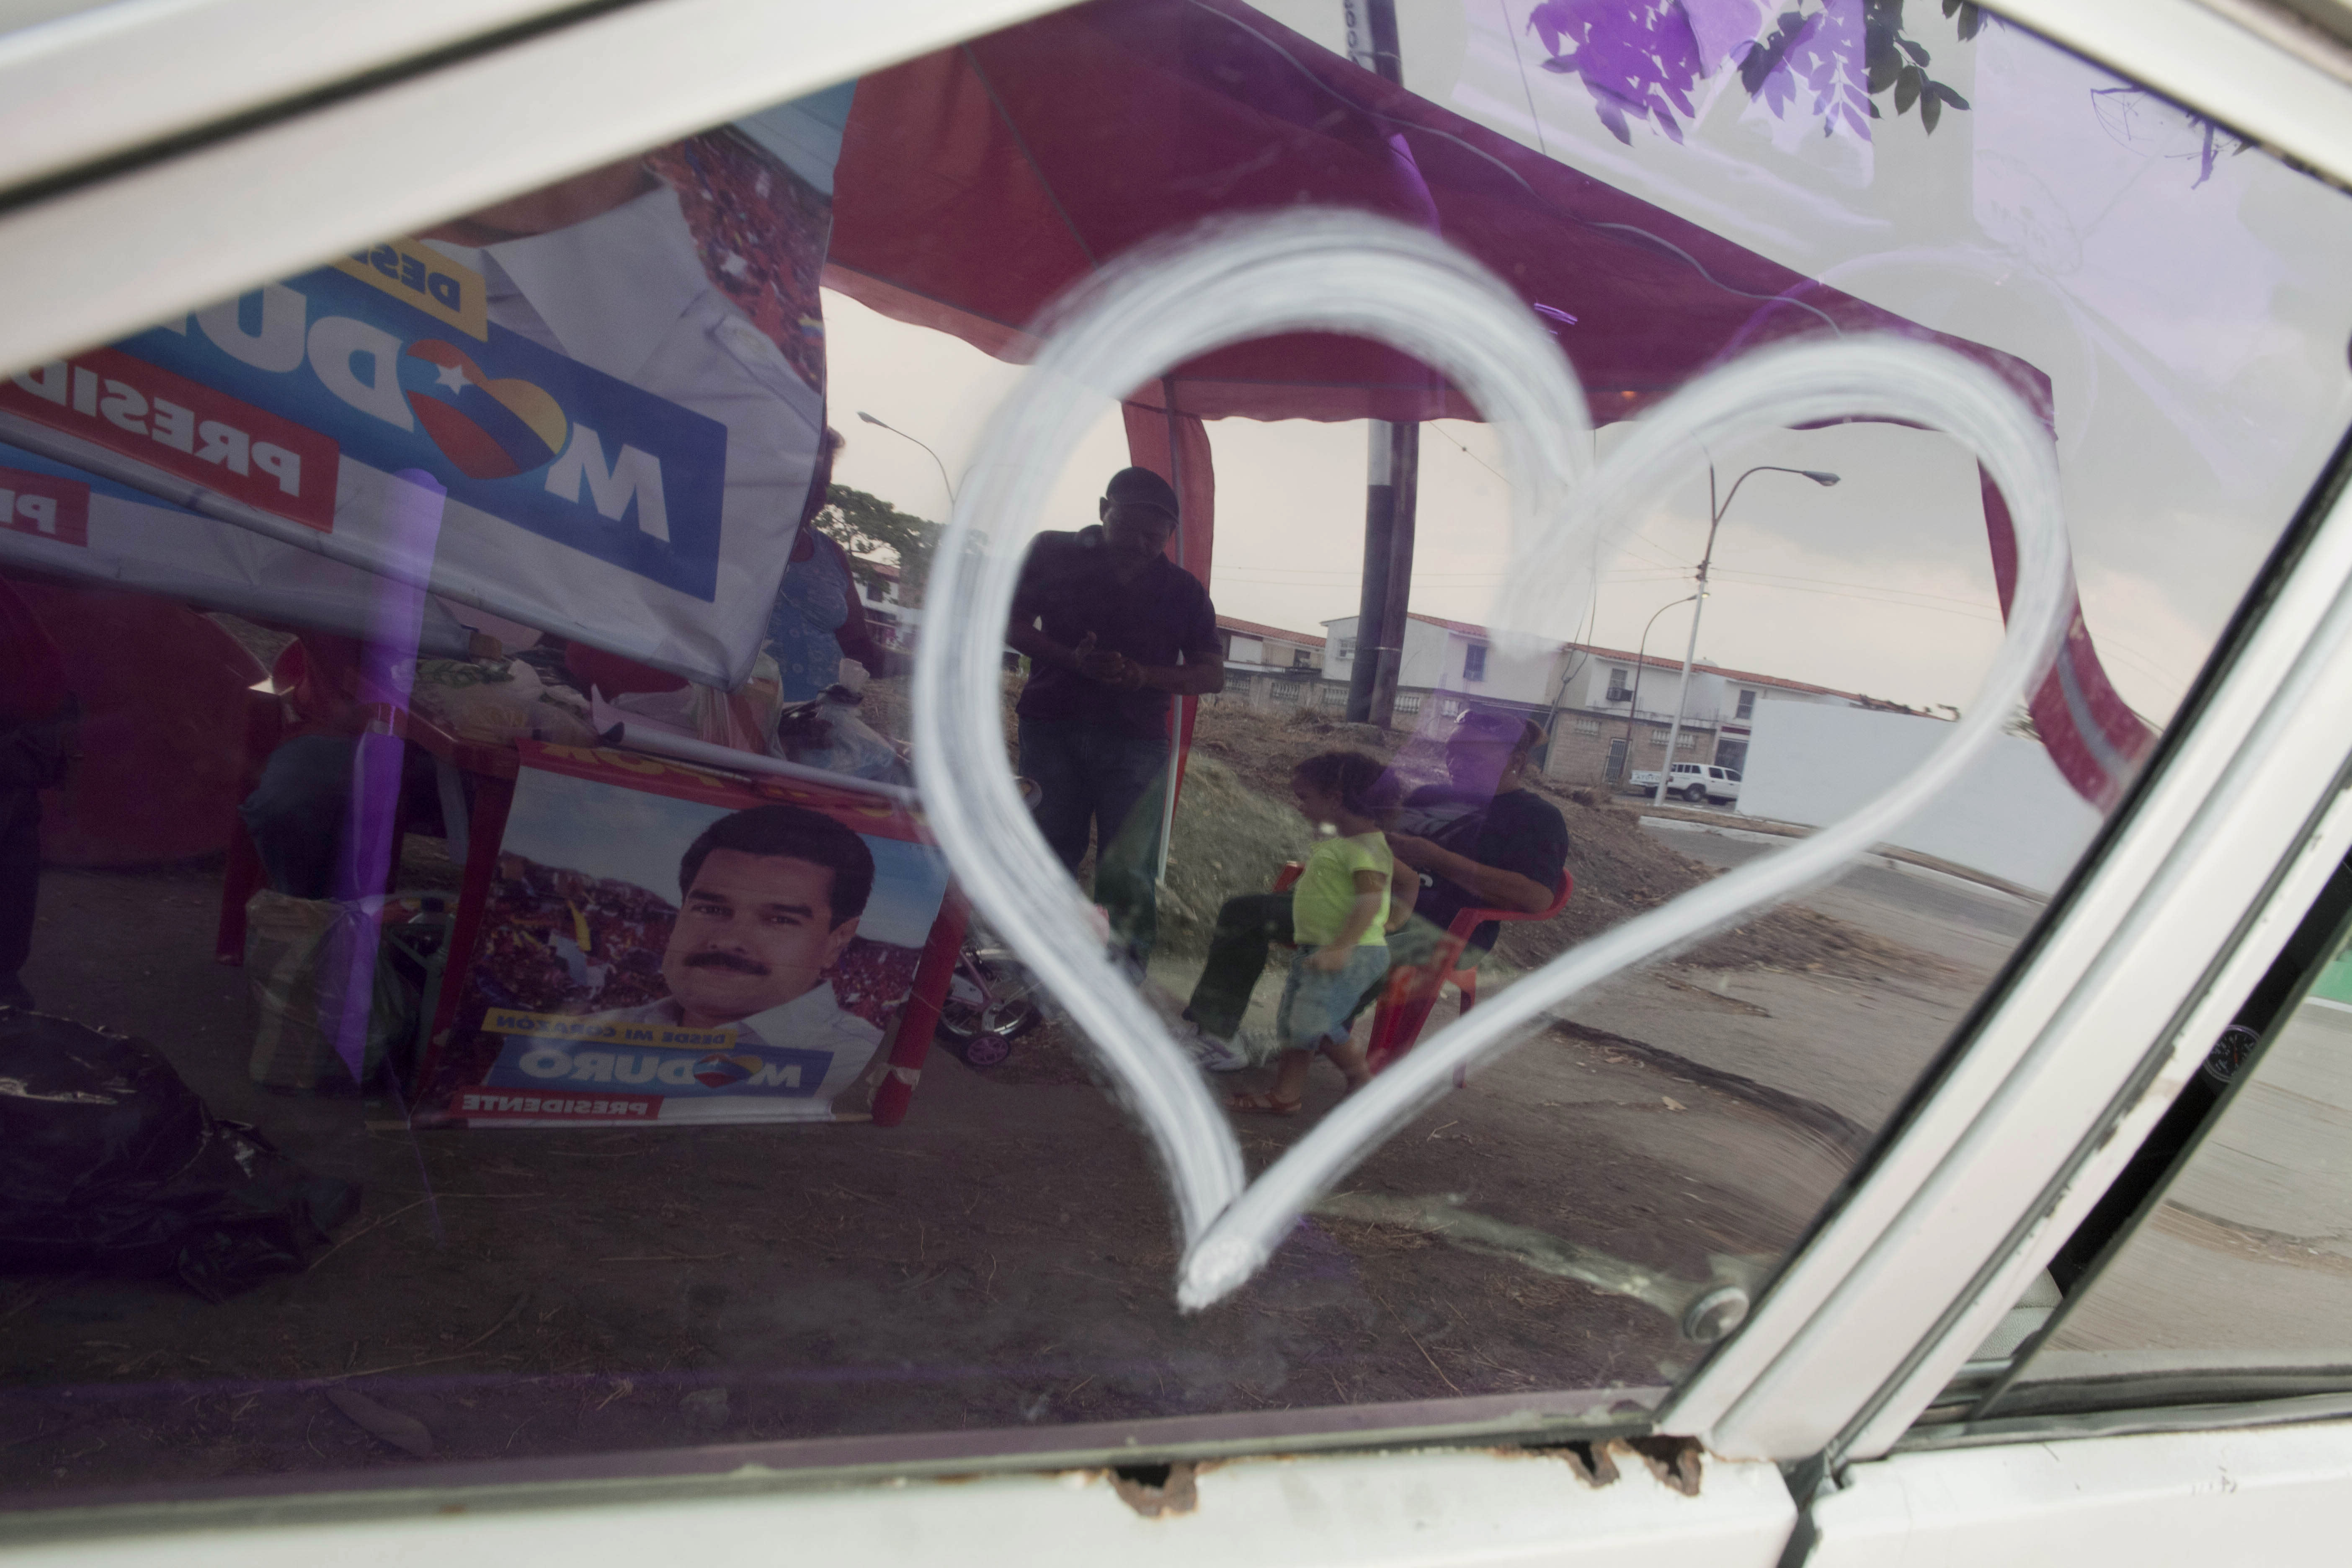 In this April 8, 2013 photo, supporters of the ruling party presidential candidate and acting President Nicolas Maduro are reflected in a car window in Valencia, Venezuela. Outside Venezuela's capital, power outages, food shortages and unfinished projects abound; important factors heading into Sunday's election to replace Chavez, who died last month after a long battle with cancer. Maduro, is favored to win, largely on the strength of Chavez's generous anti-poverty programs. But recent polls show that support for Maduro, Chavez's hand-picked successor, may be eroding. (AP Photo/Ramon Espinosa)